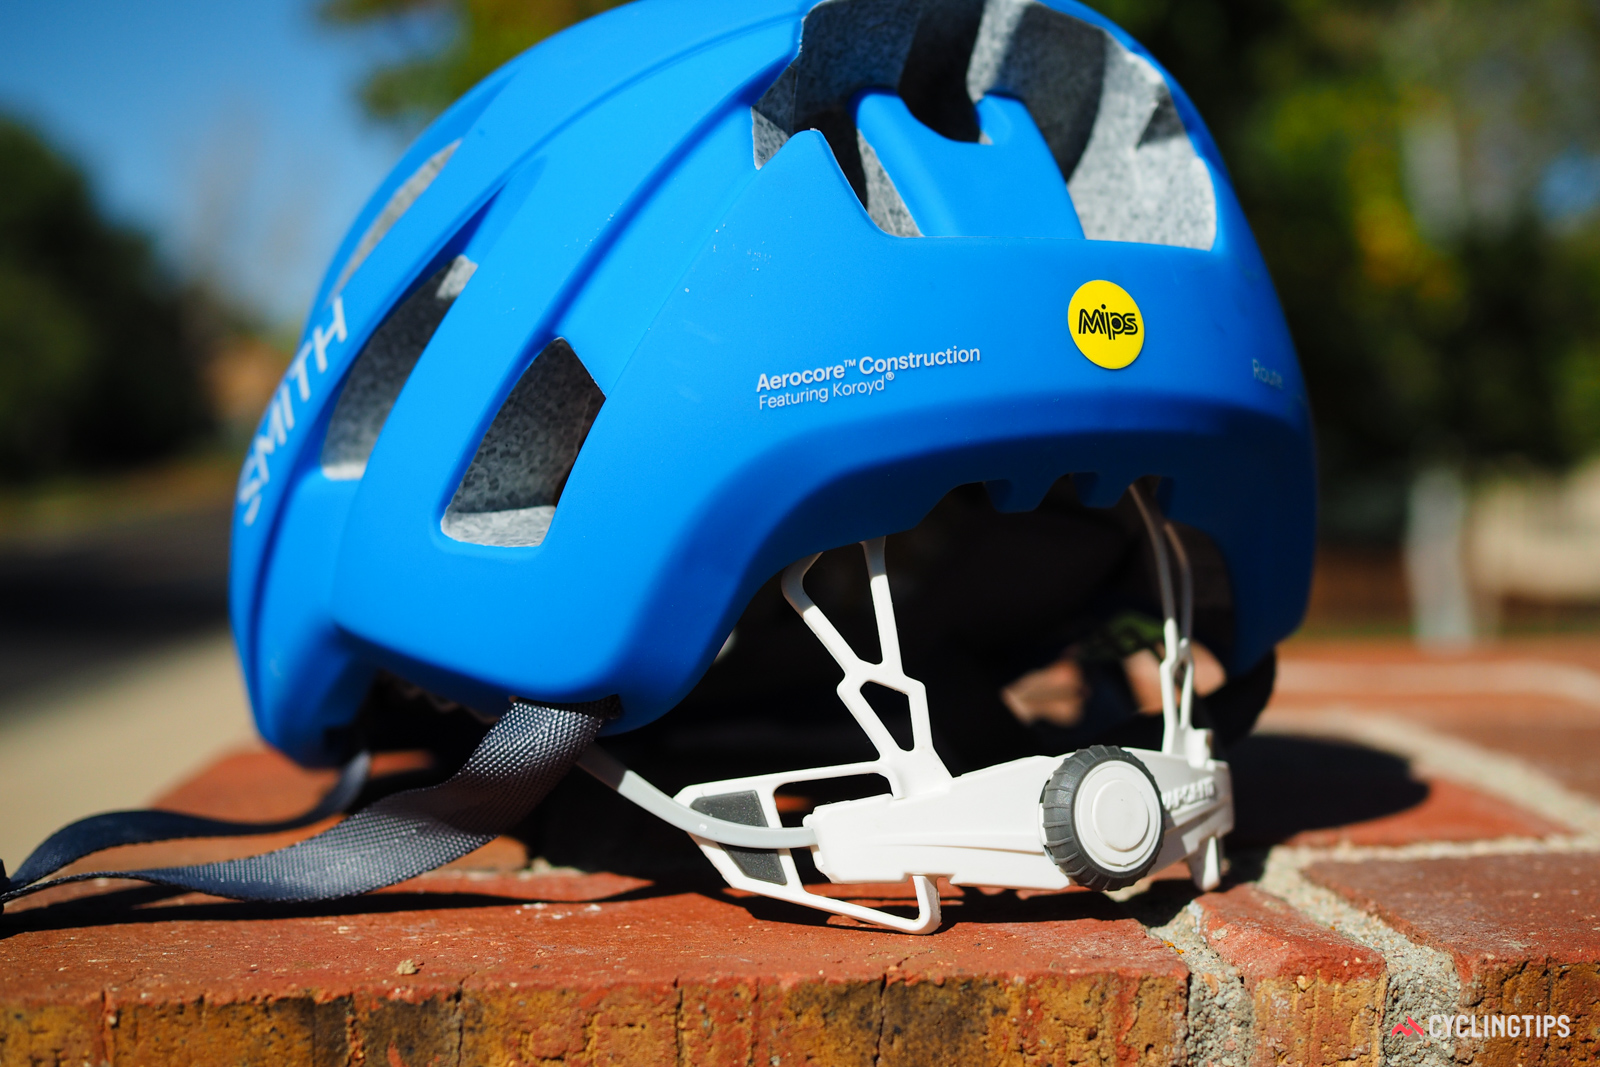 The flexible VaporFit retention system on the Smith Optics Route helmet is quite comfortable, adjustable for height, and definitely very easy to use.